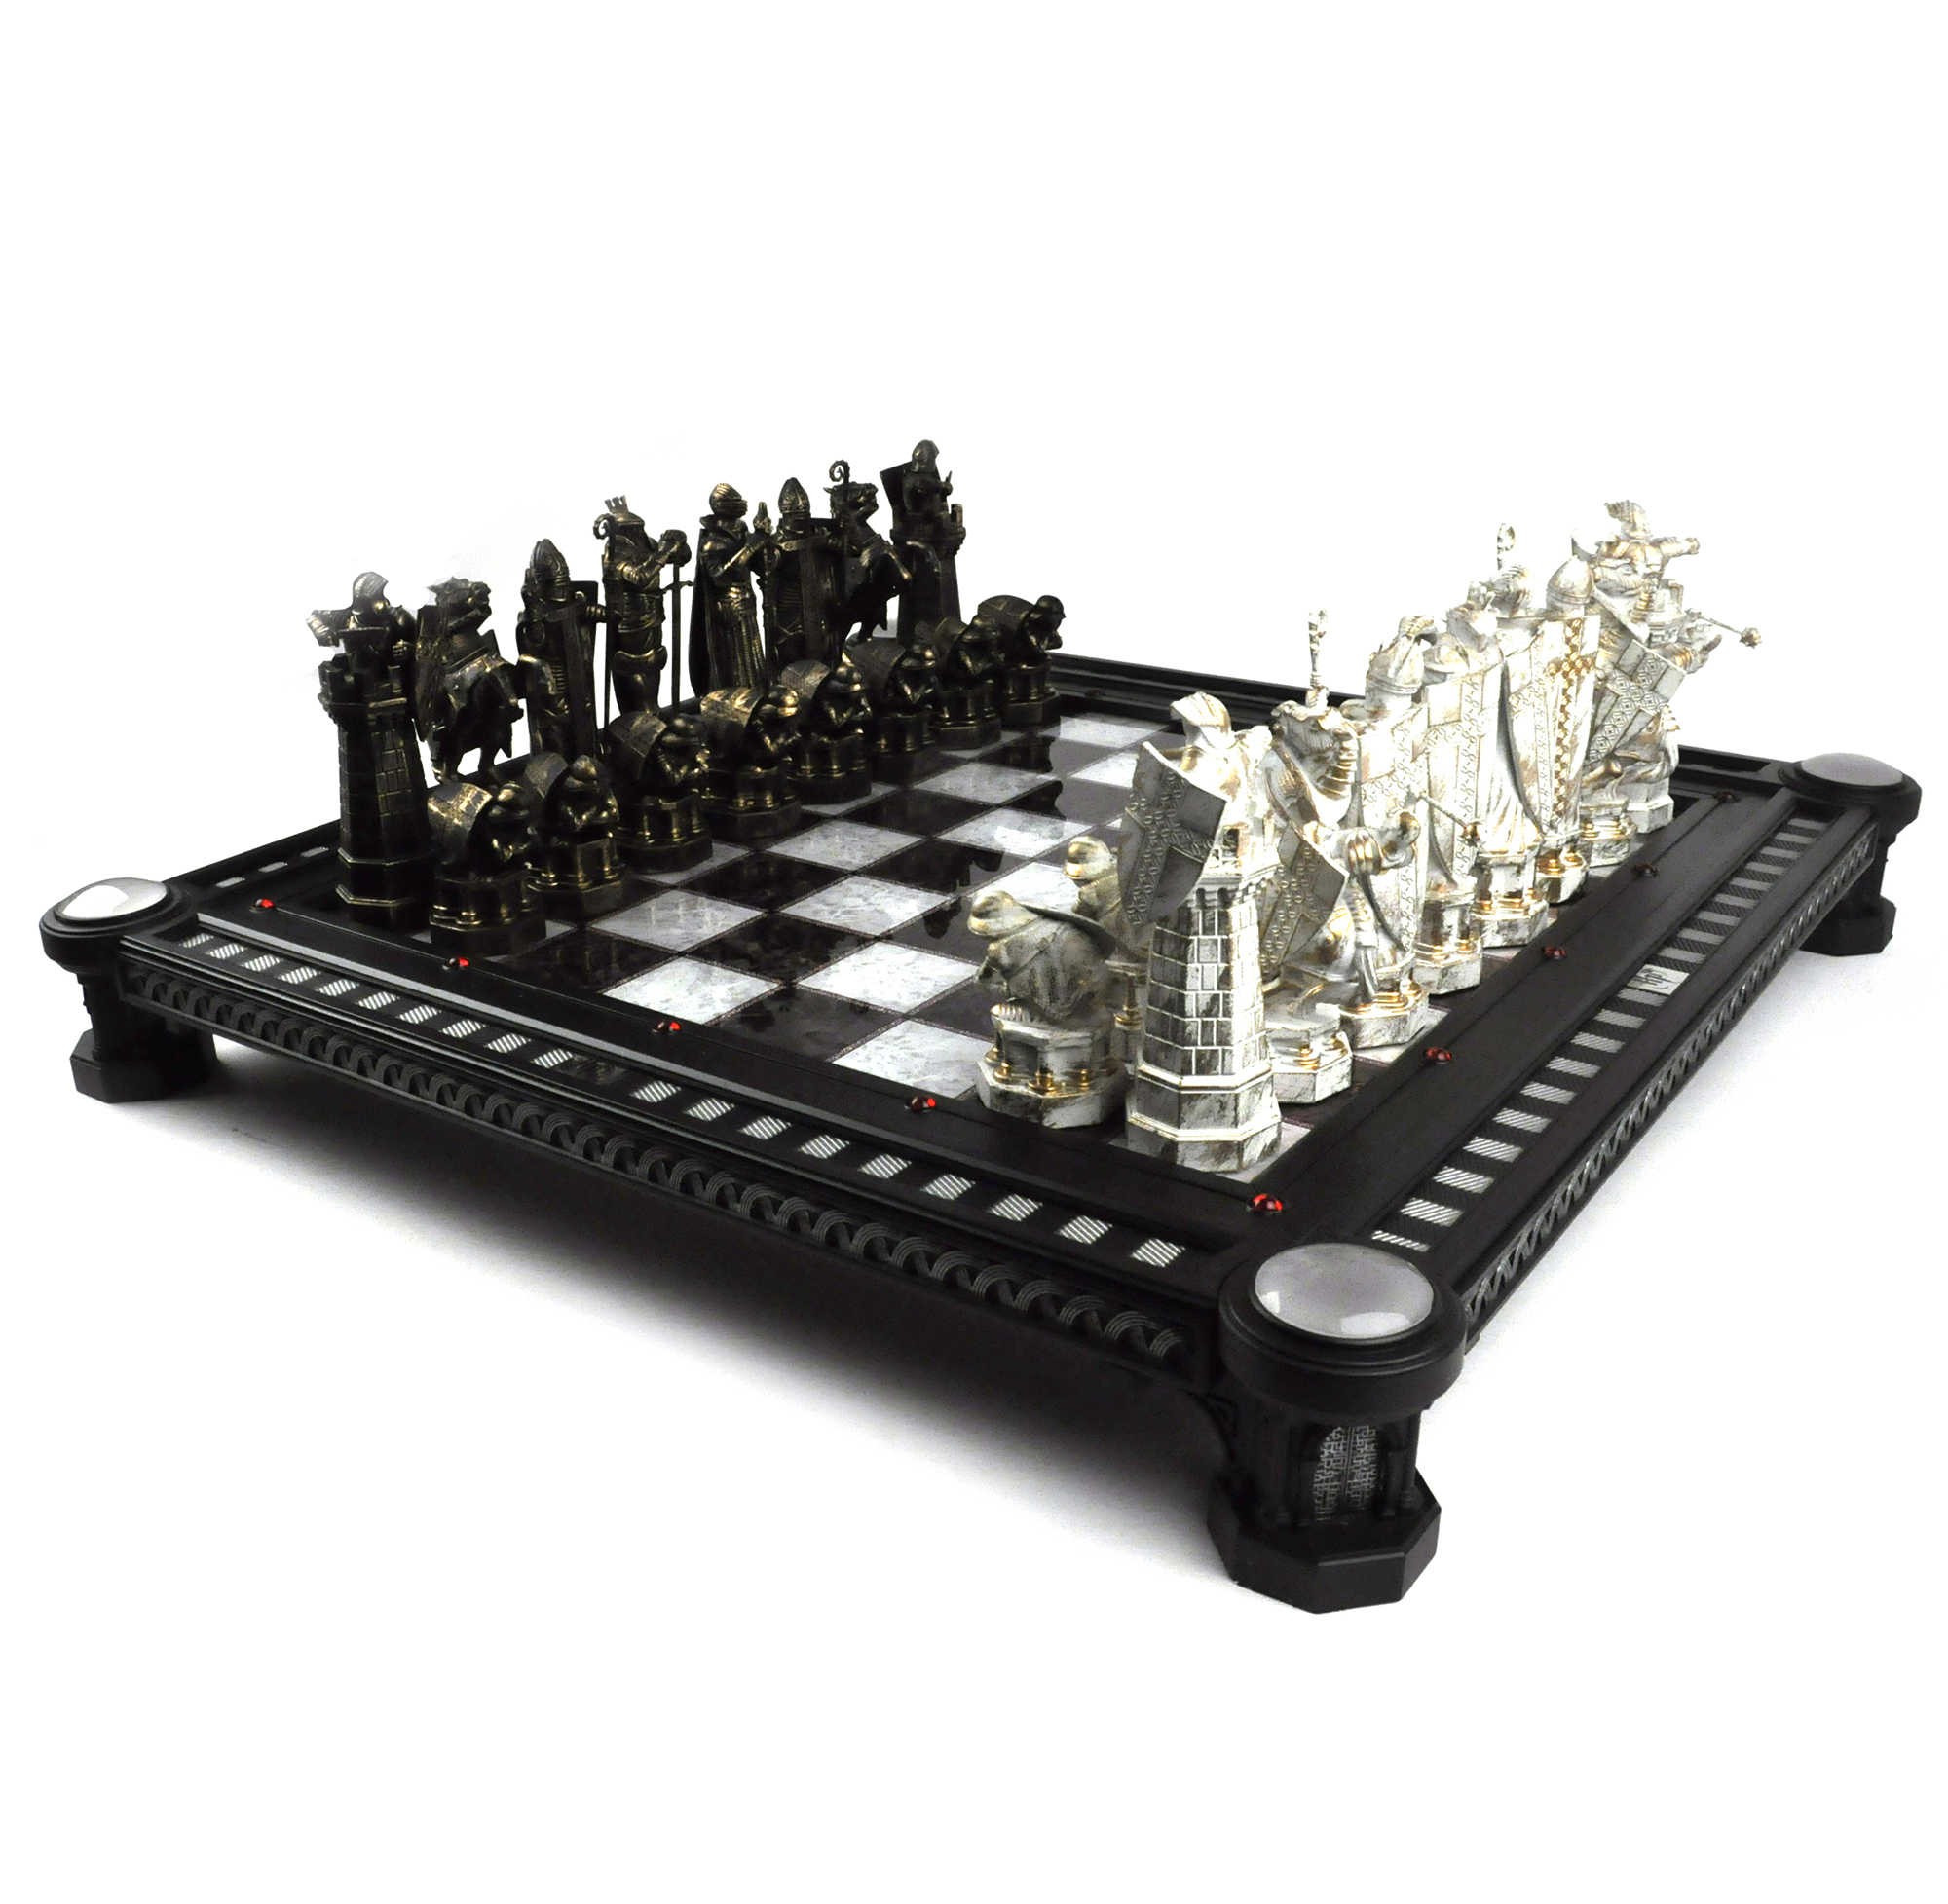 The wizards chess set from harry potter and the philosophers stone deluxe repl ebay - Deluxe chess sets ...